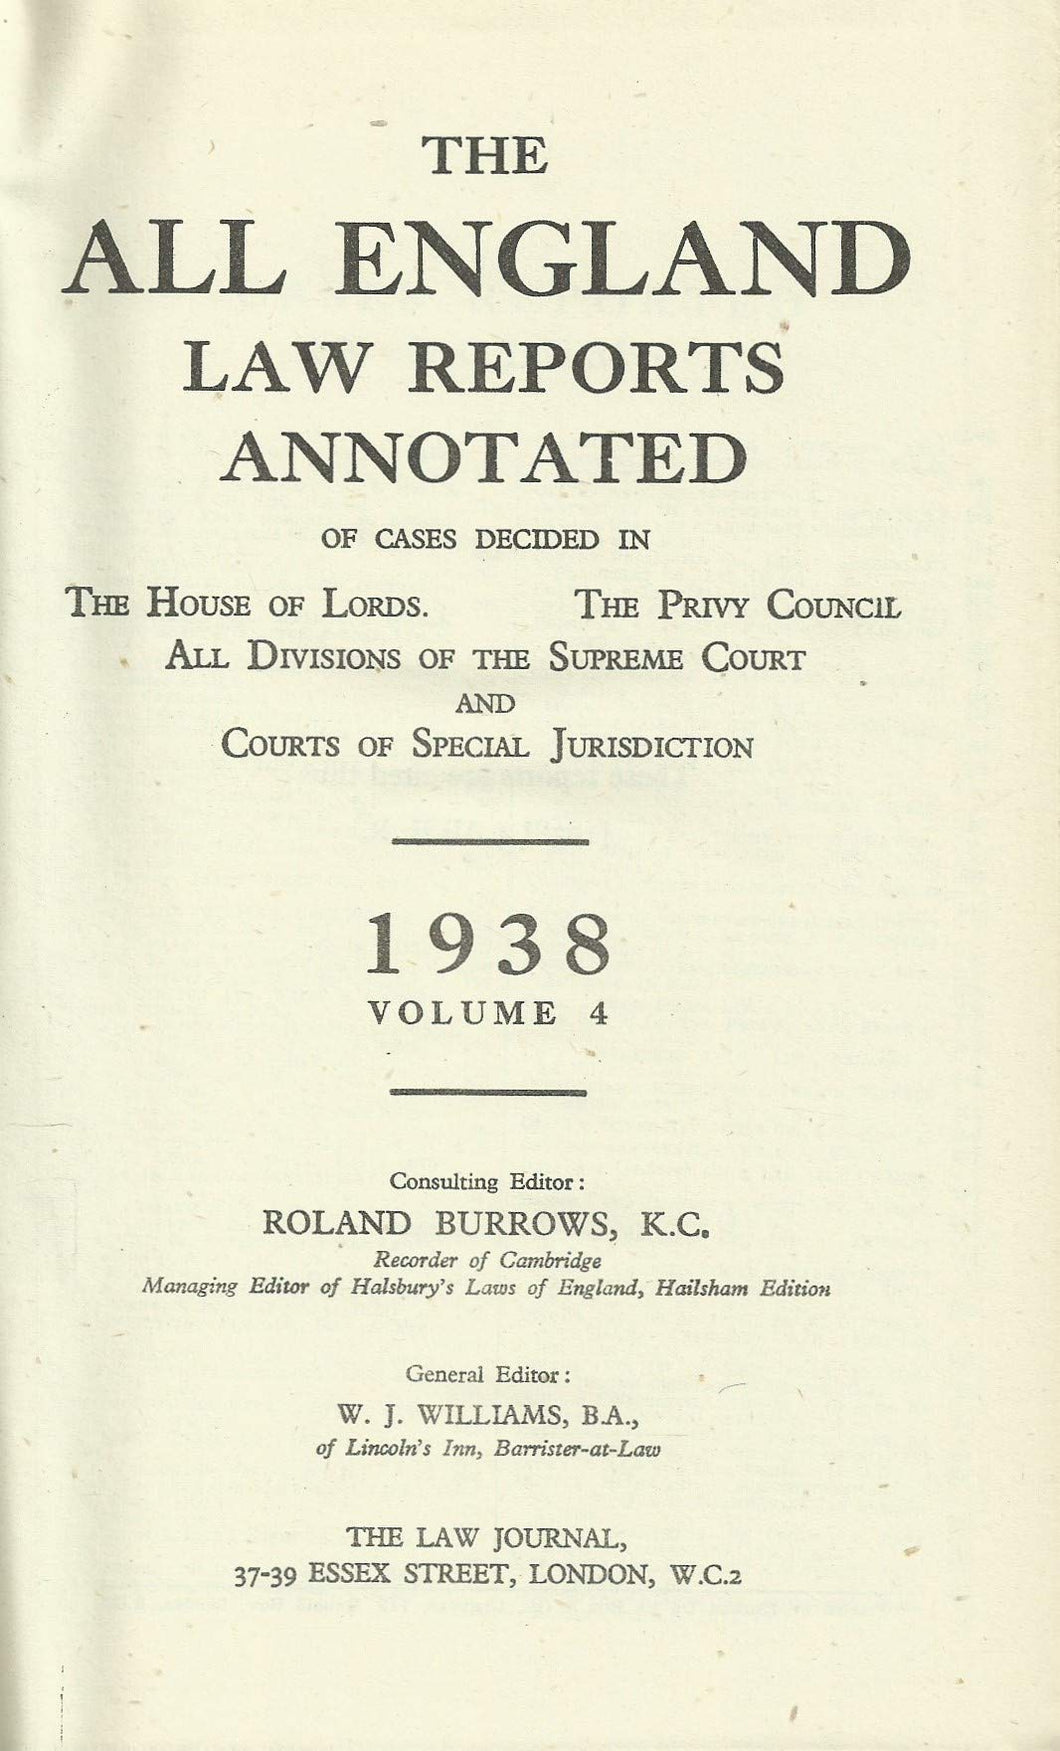 The All England Law Reports 1938, Volume 4